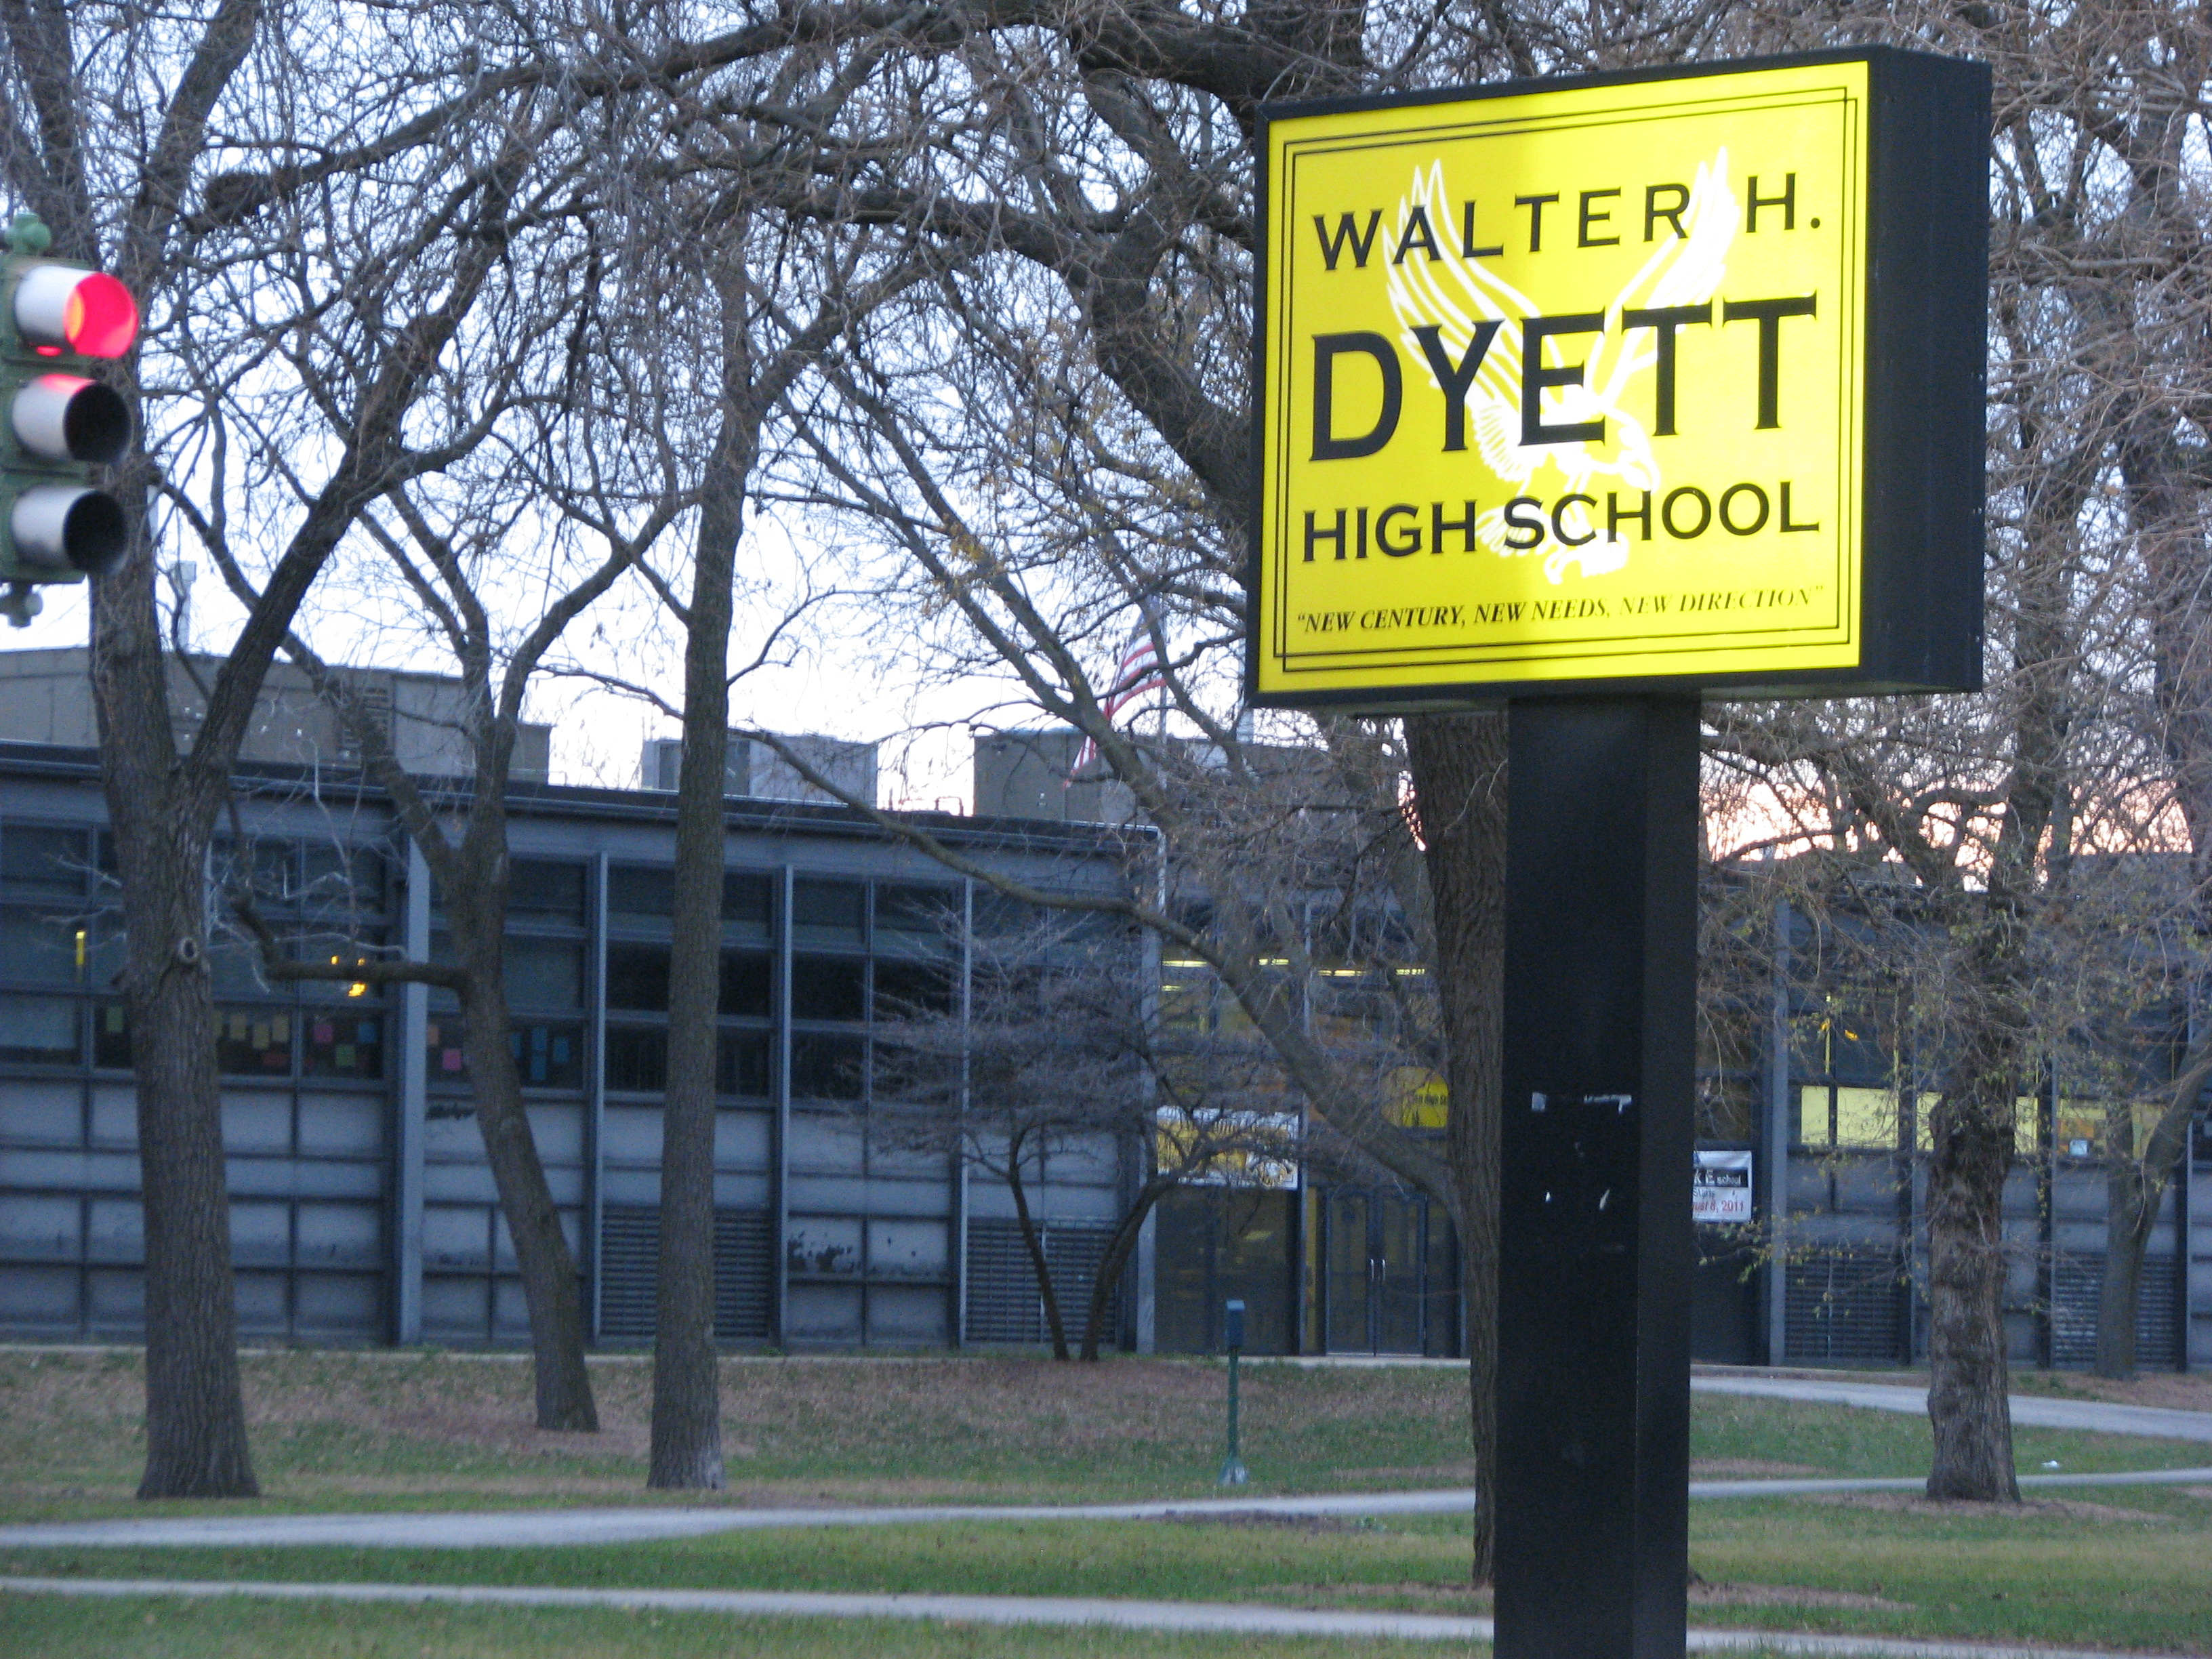 dyett school chicago